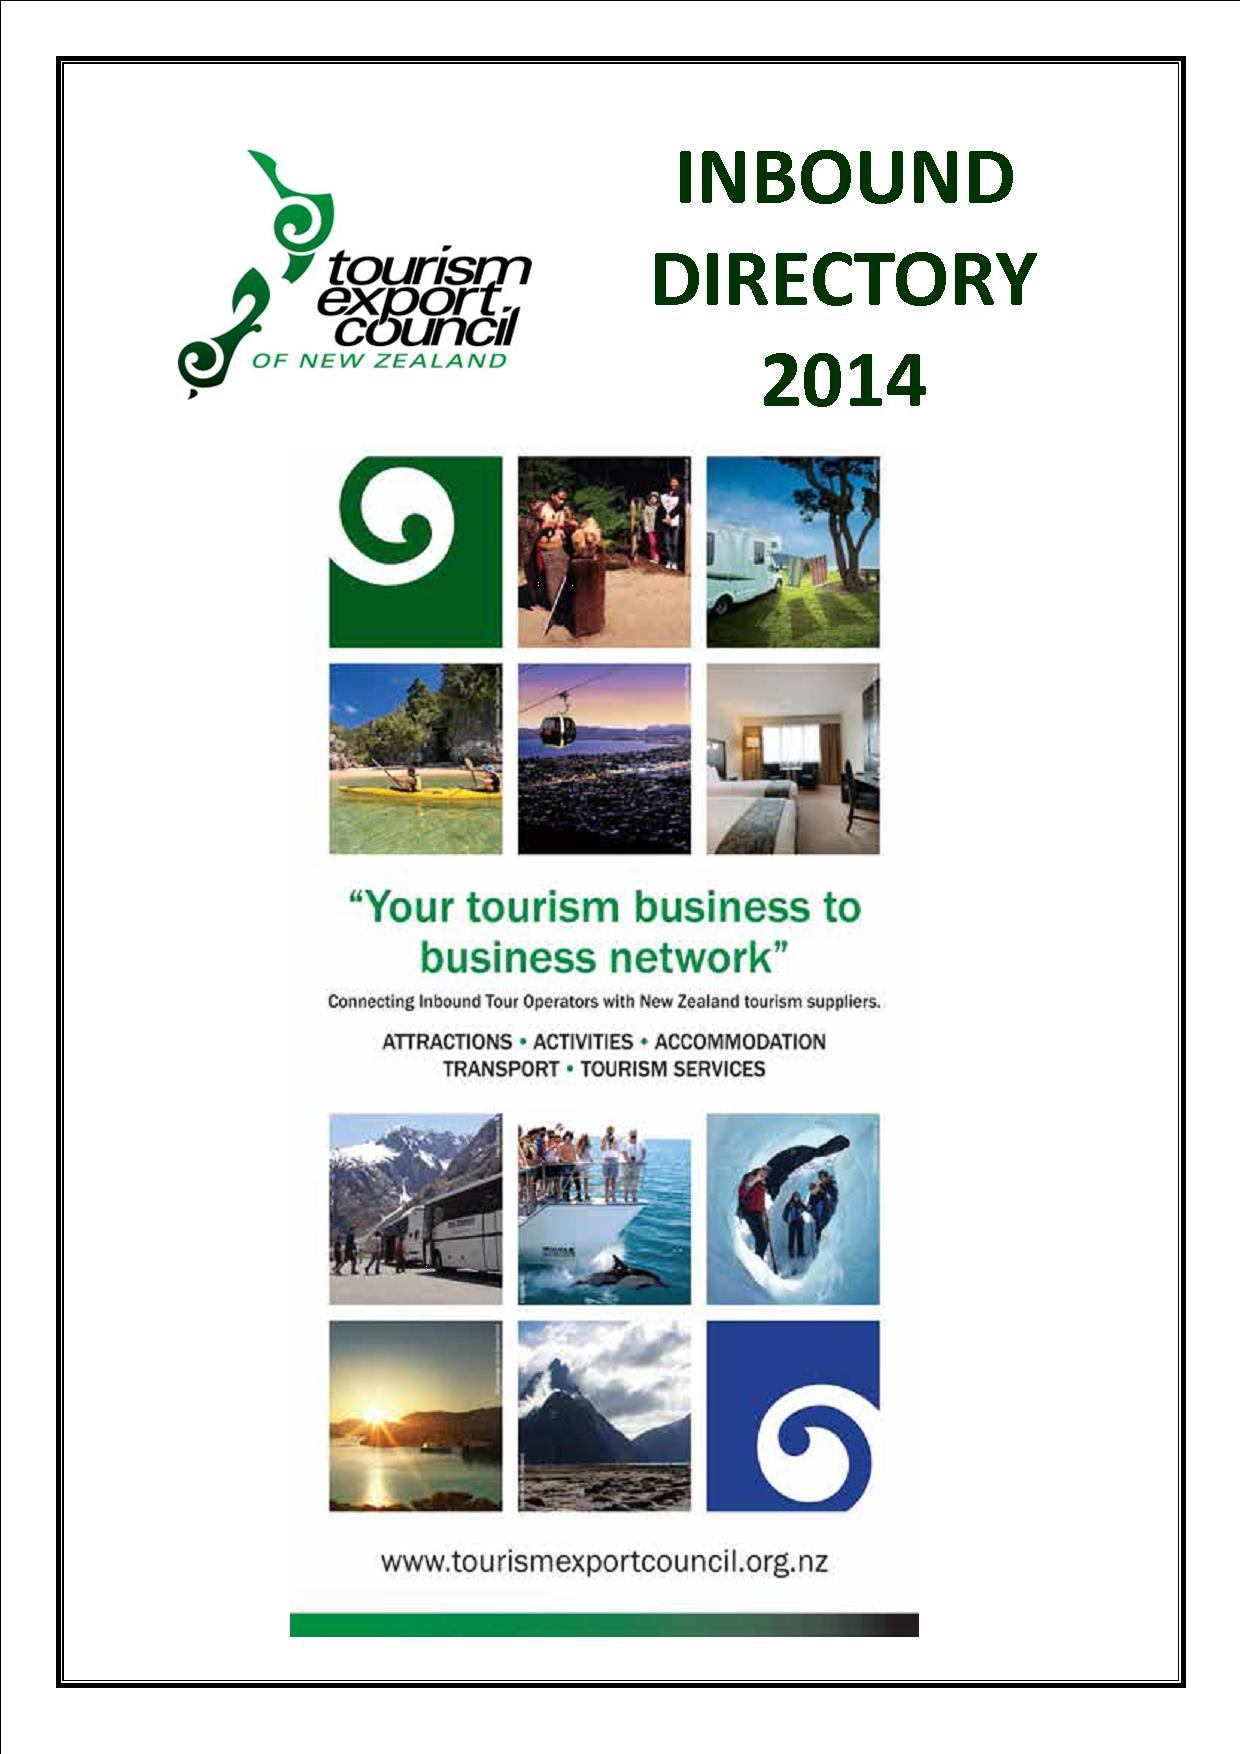 Inbound Directory cover 2014 2